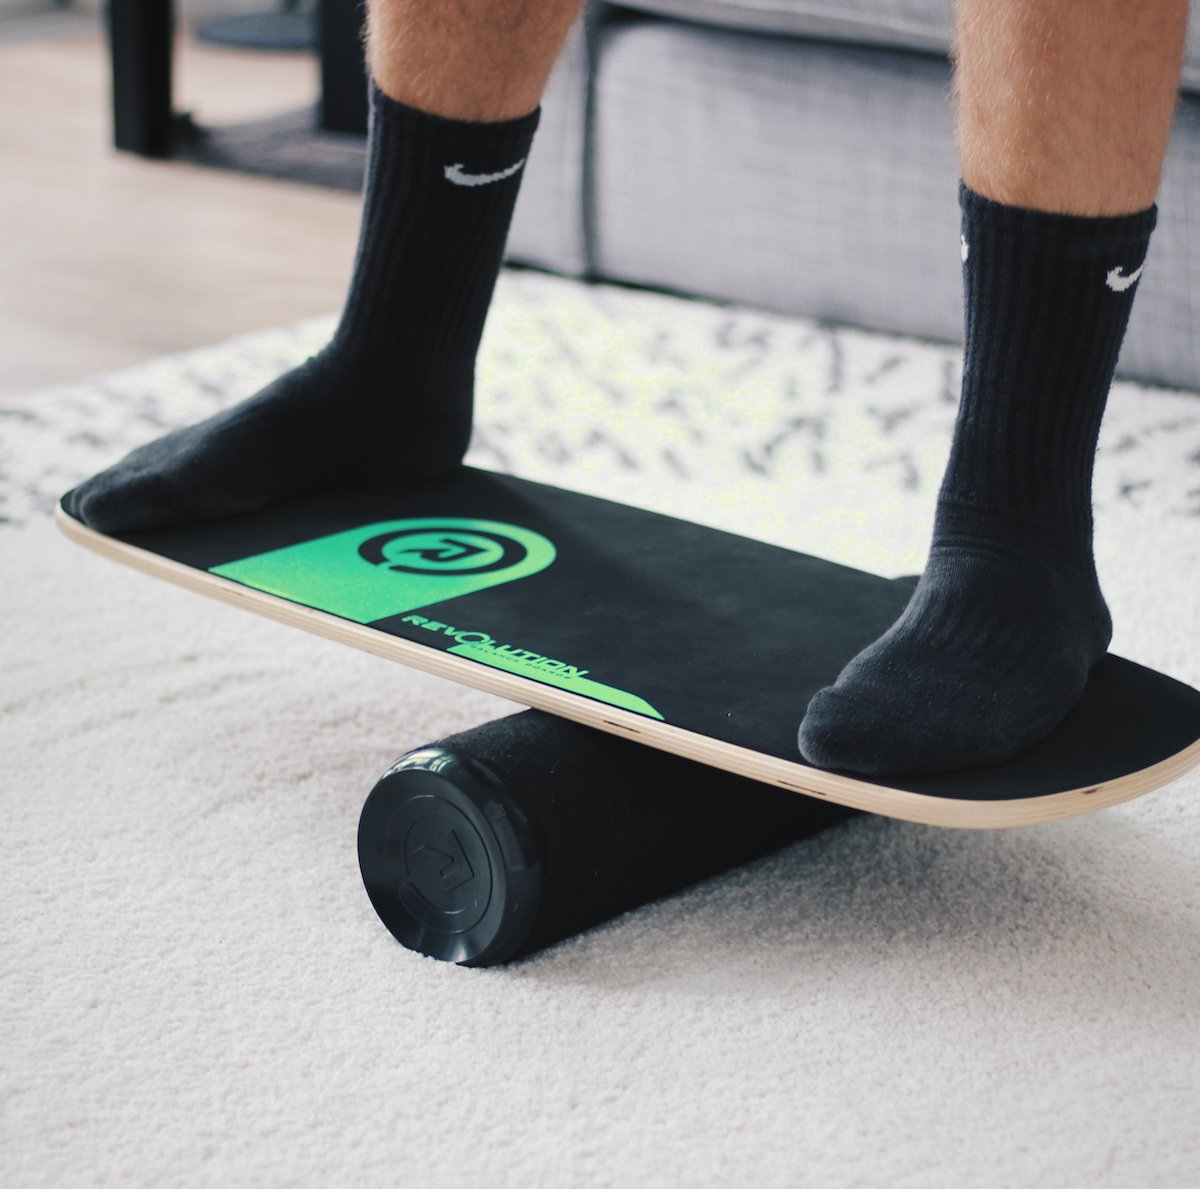 Revolution 101 Balance Board Trainer (Green) by Revolution Balance Boards (Image #5)